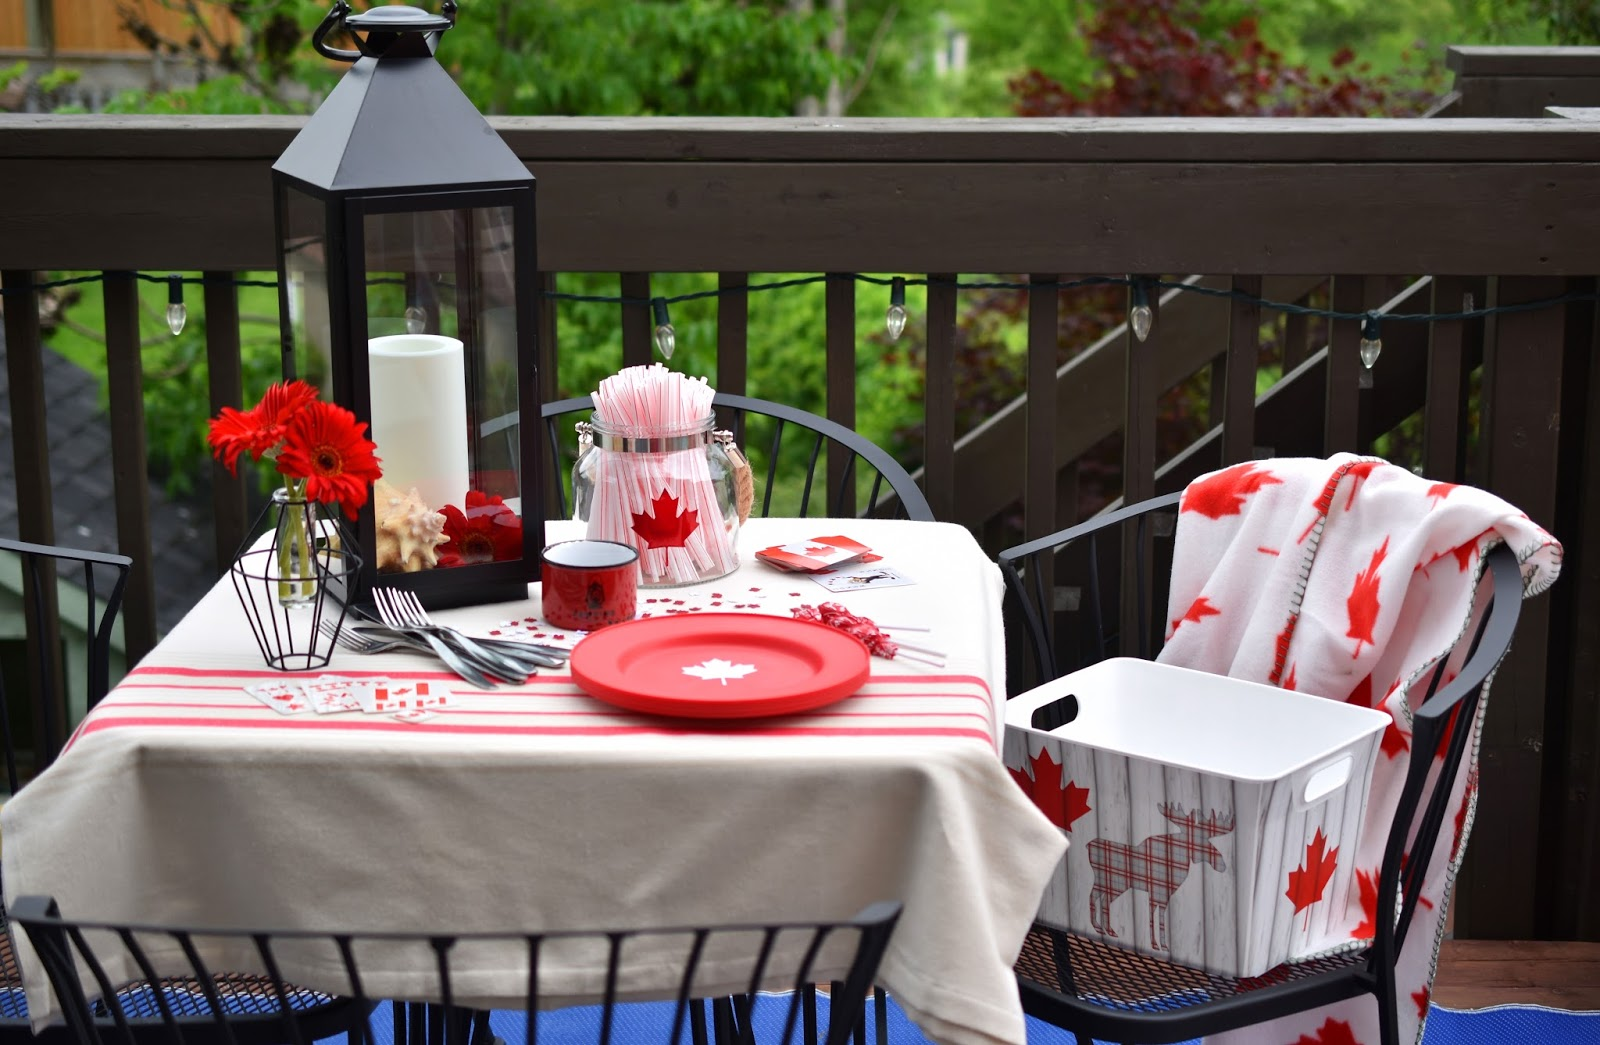 Woman in real life the art of the everyday canada day for Home decor parties canada